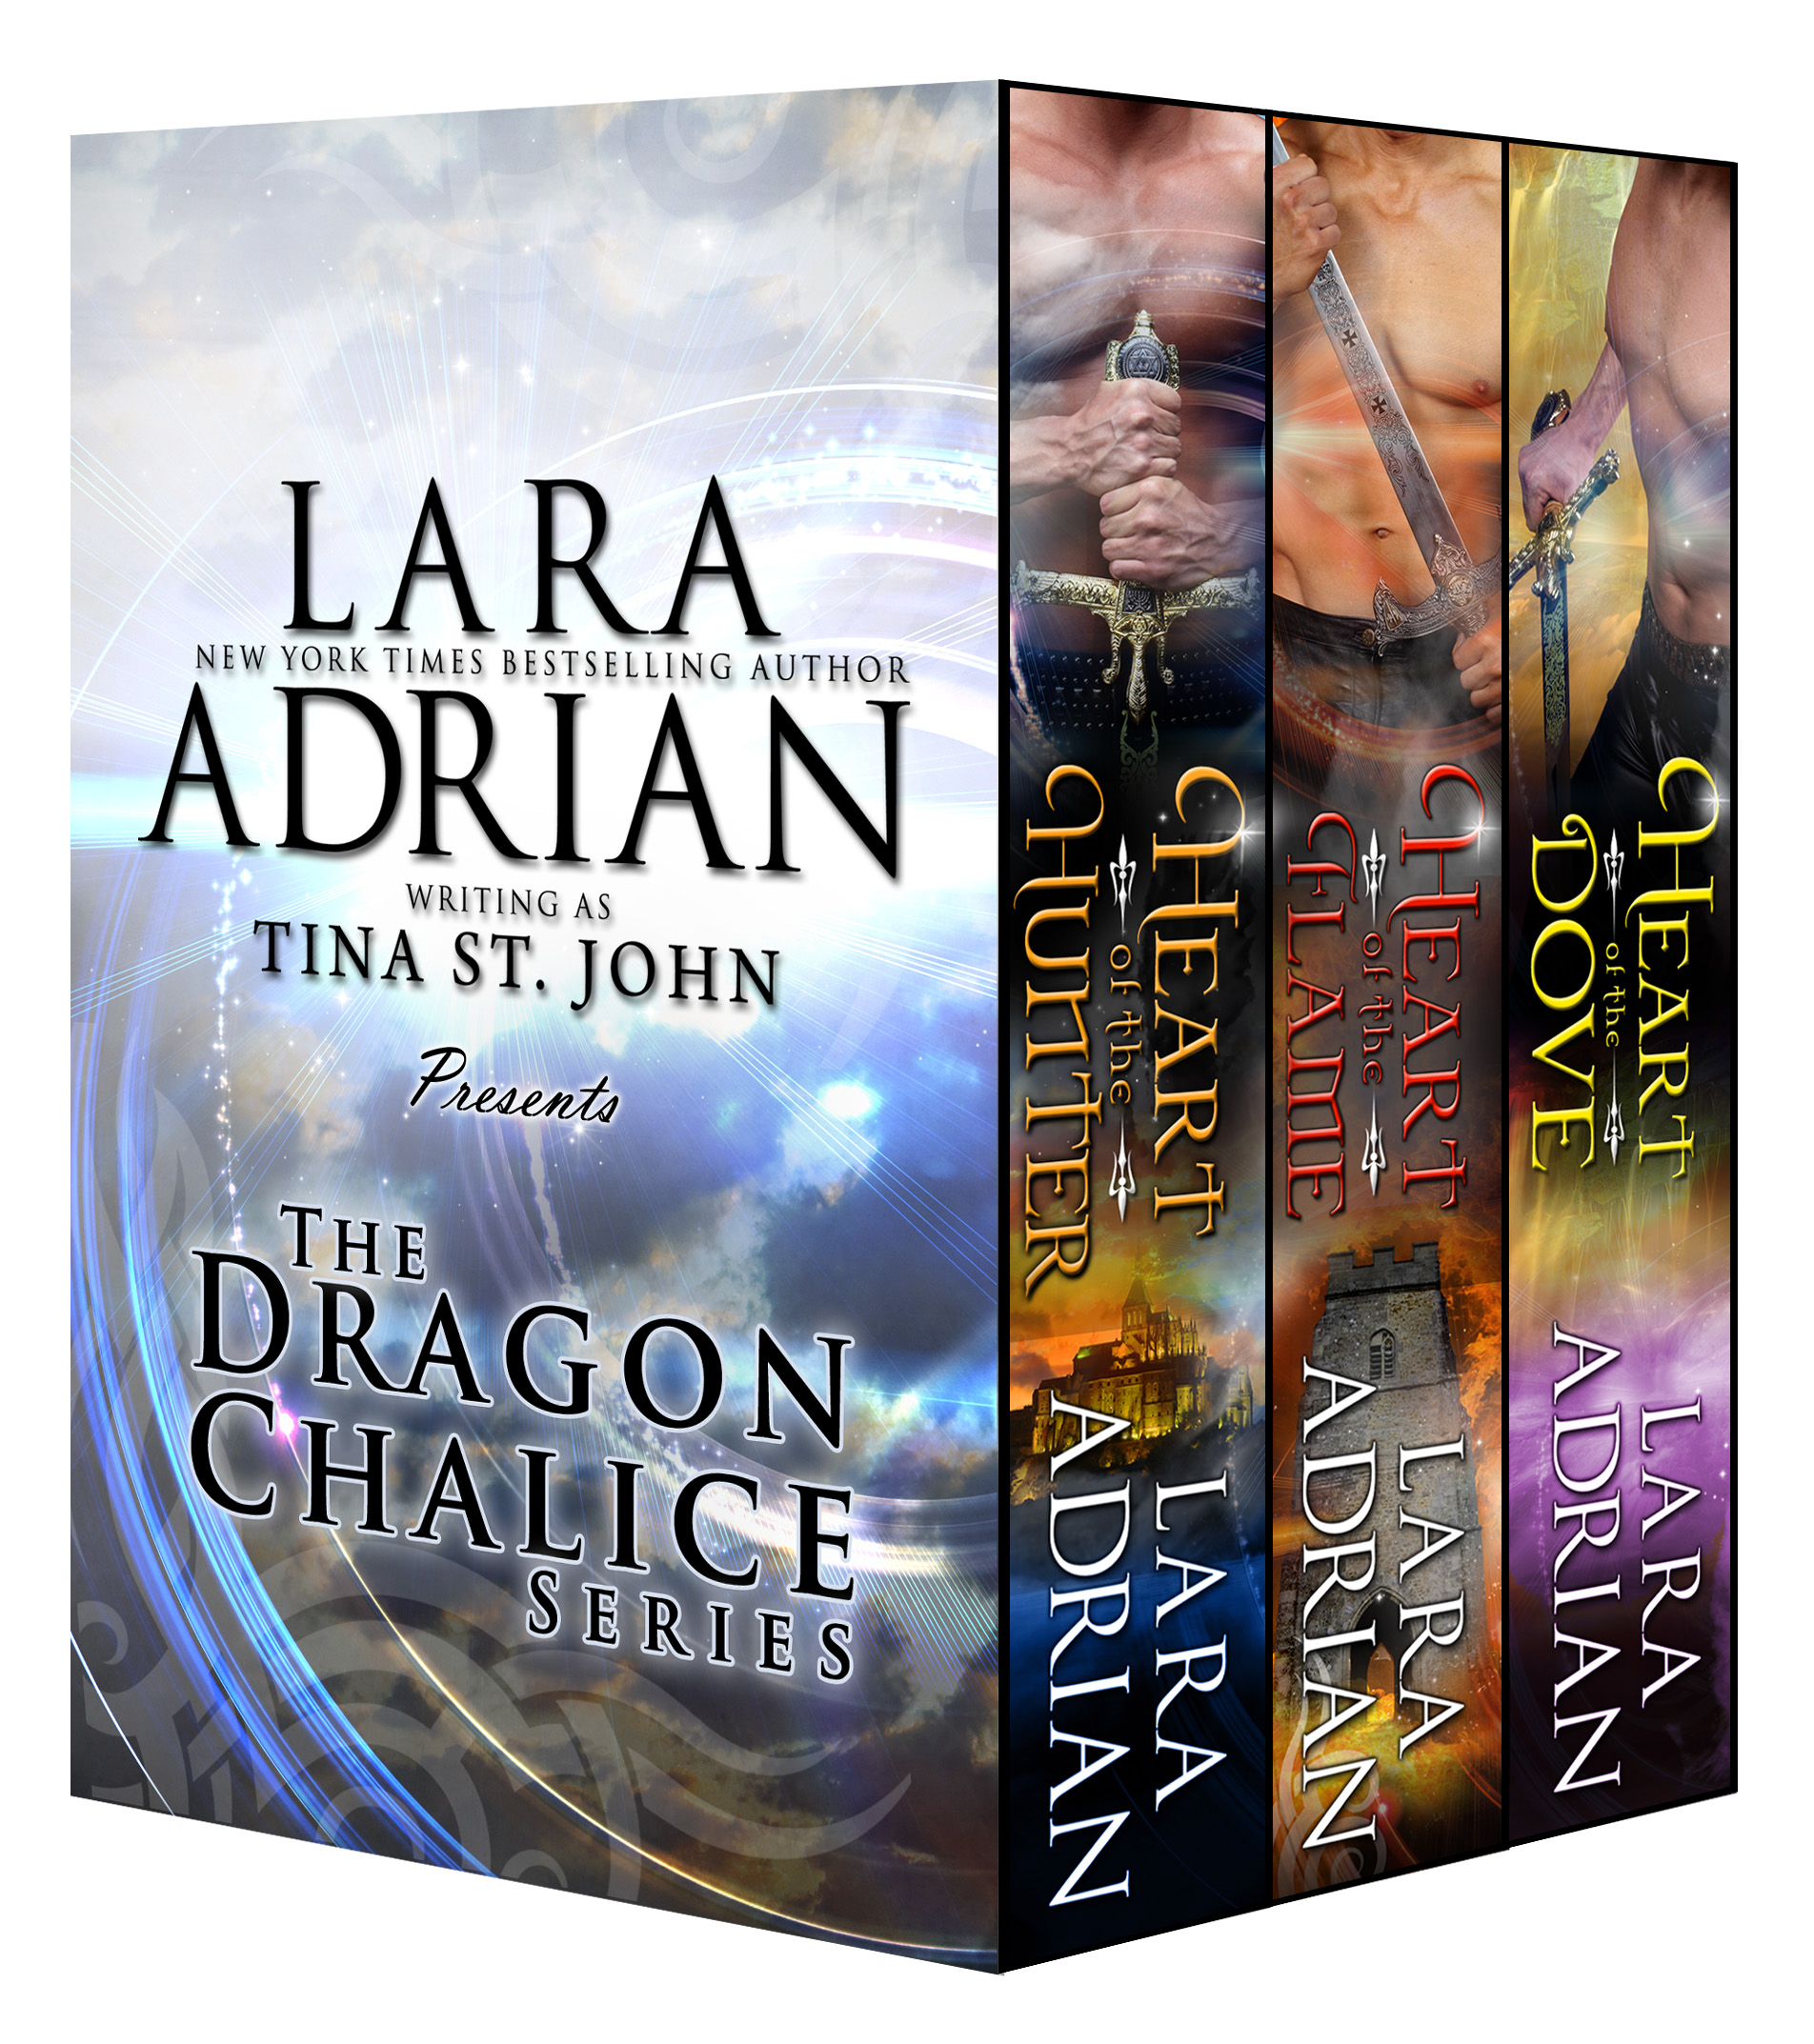 Dragon Chalice Series (Boxed Set) By: Lara Adrian